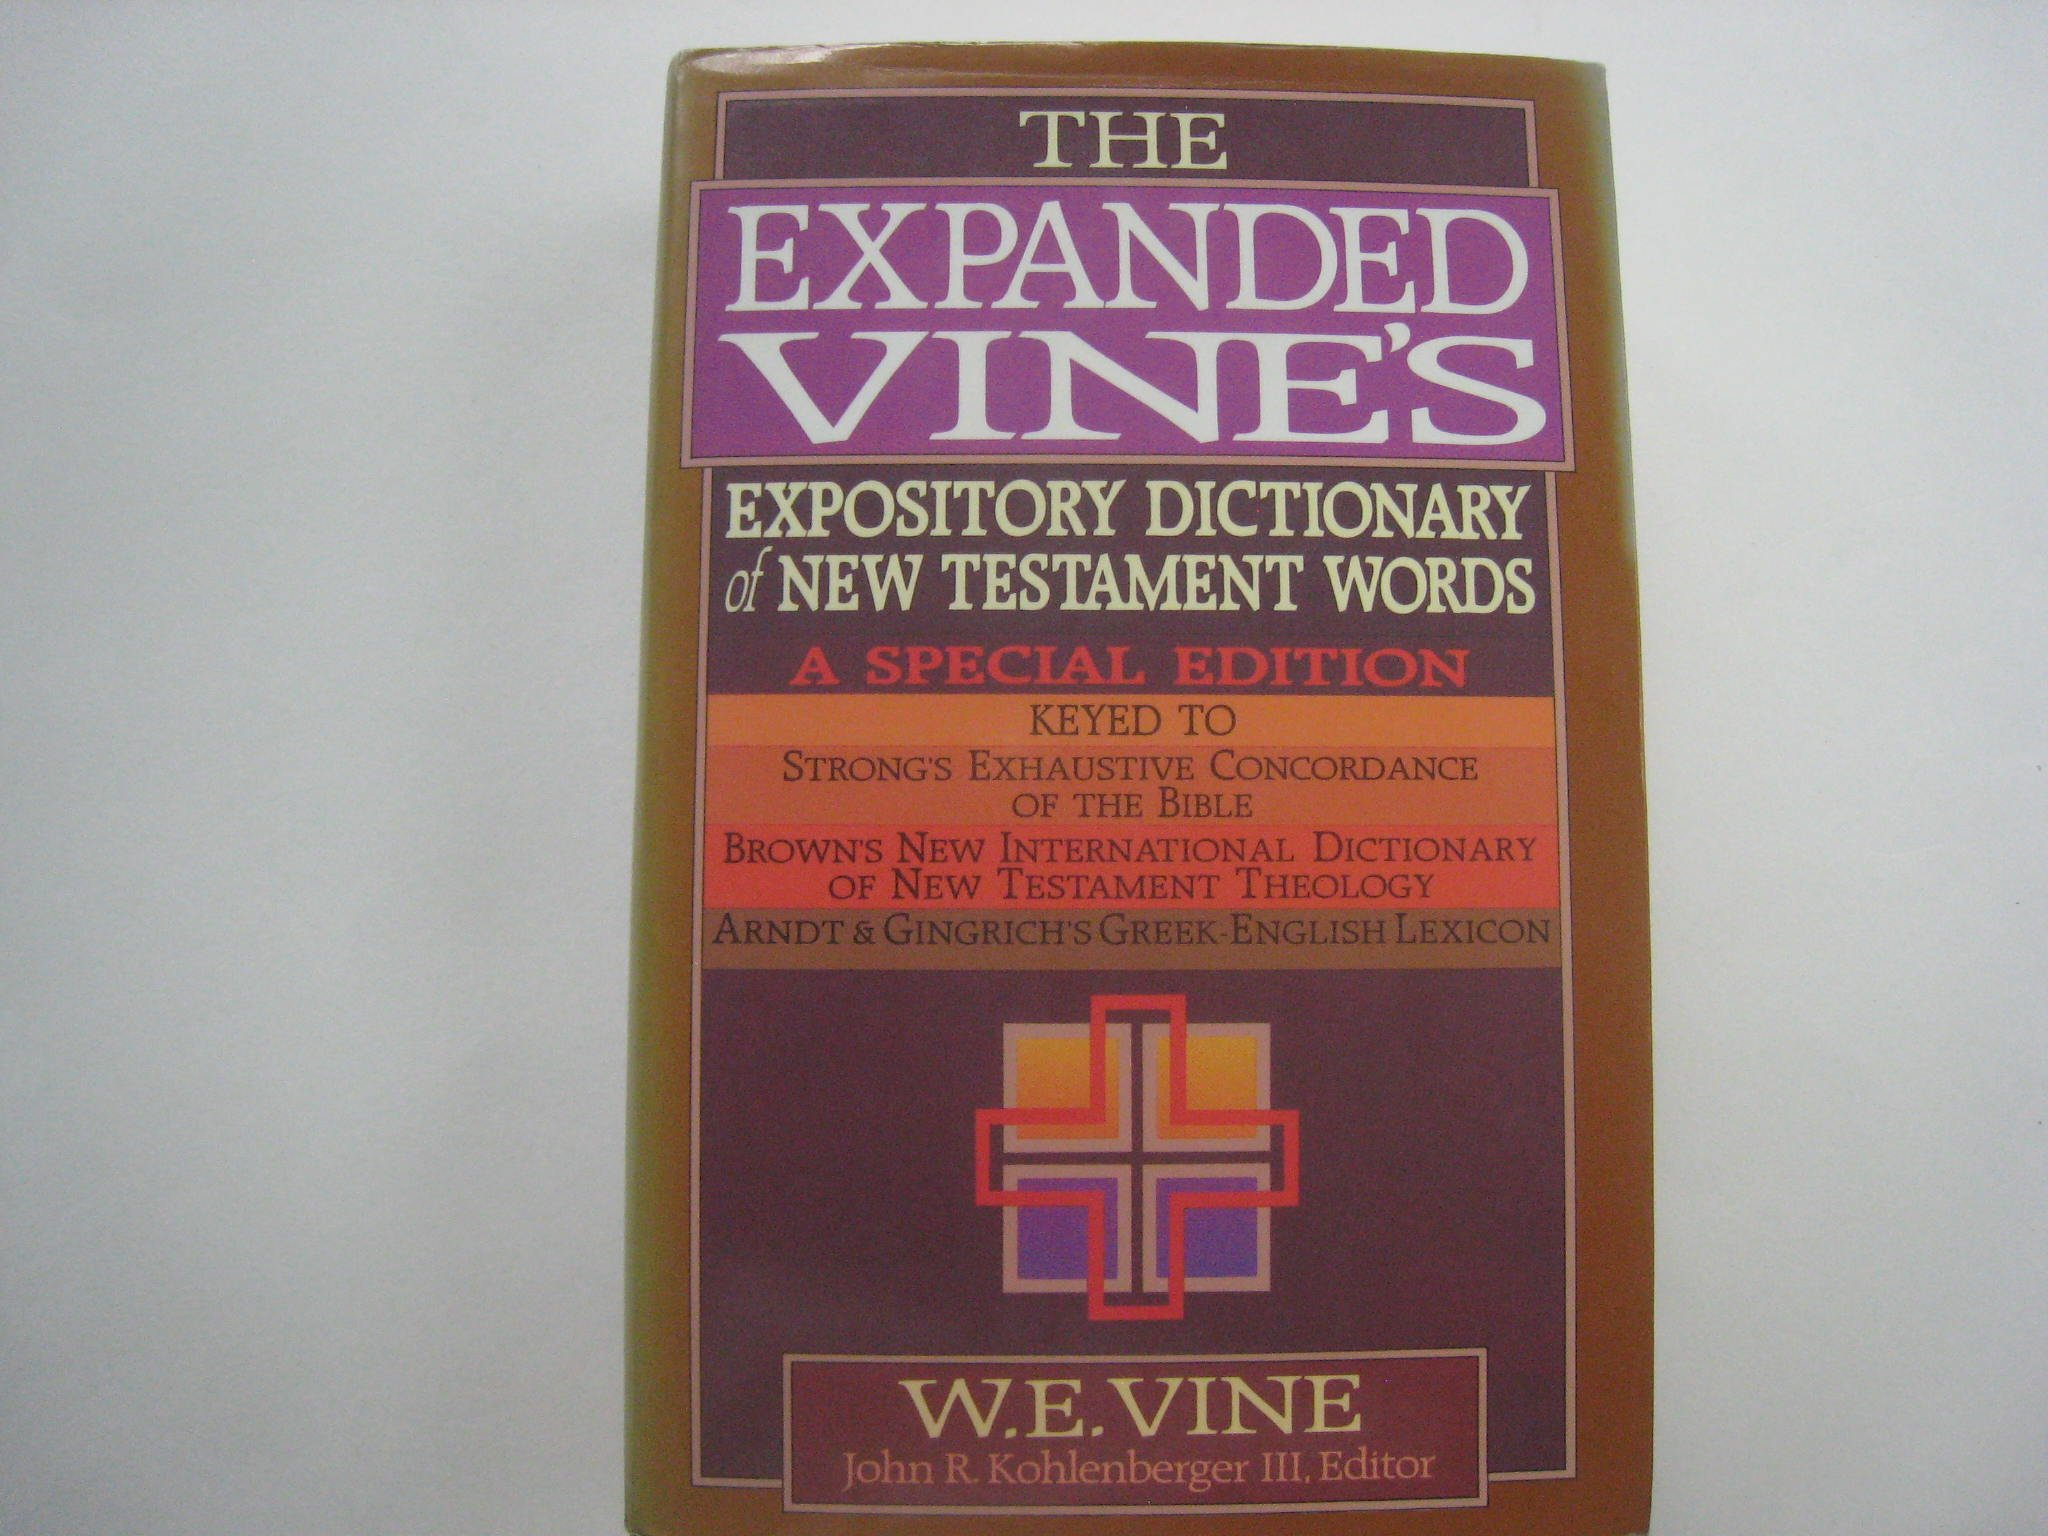 The expanded vines expository dictionary of new testament words the expanded vines expository dictionary of new testament words w e vine 9780871236197 amazon books fandeluxe PDF